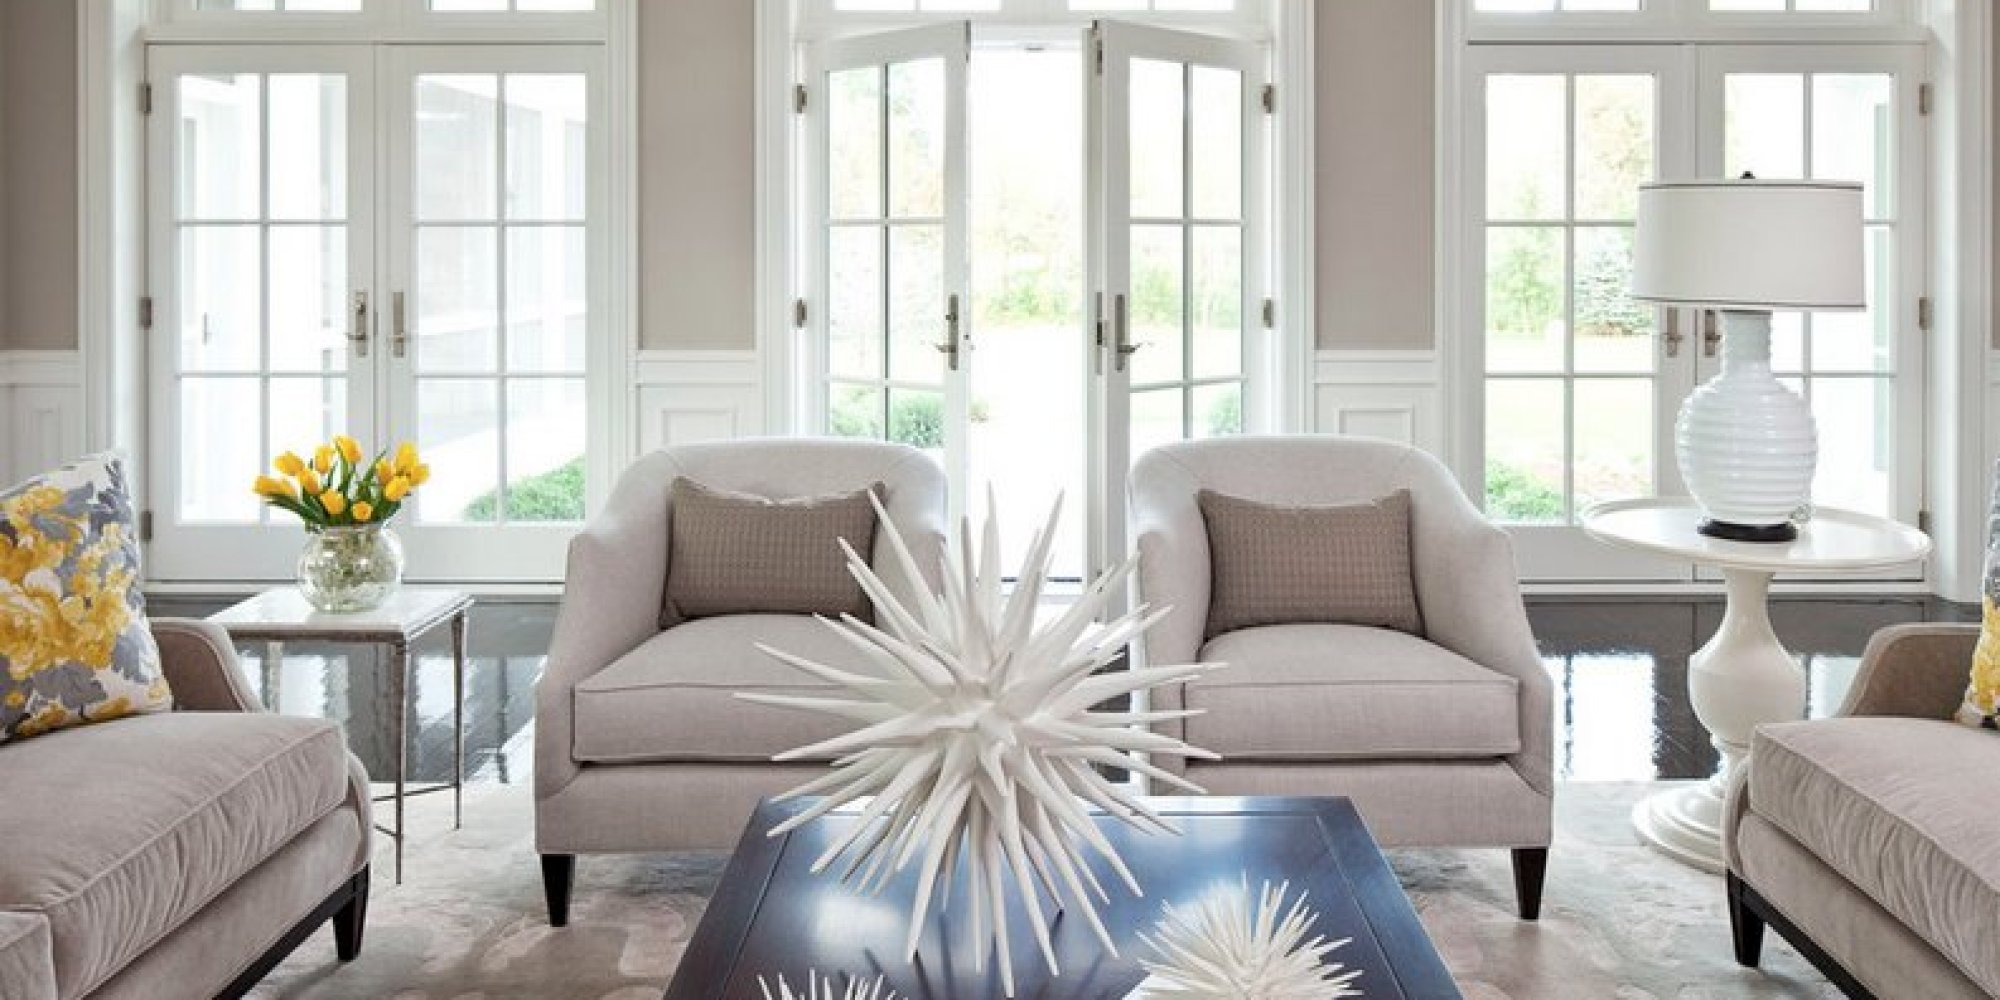 the 8 best neutral paint colors that'll work in any home, no